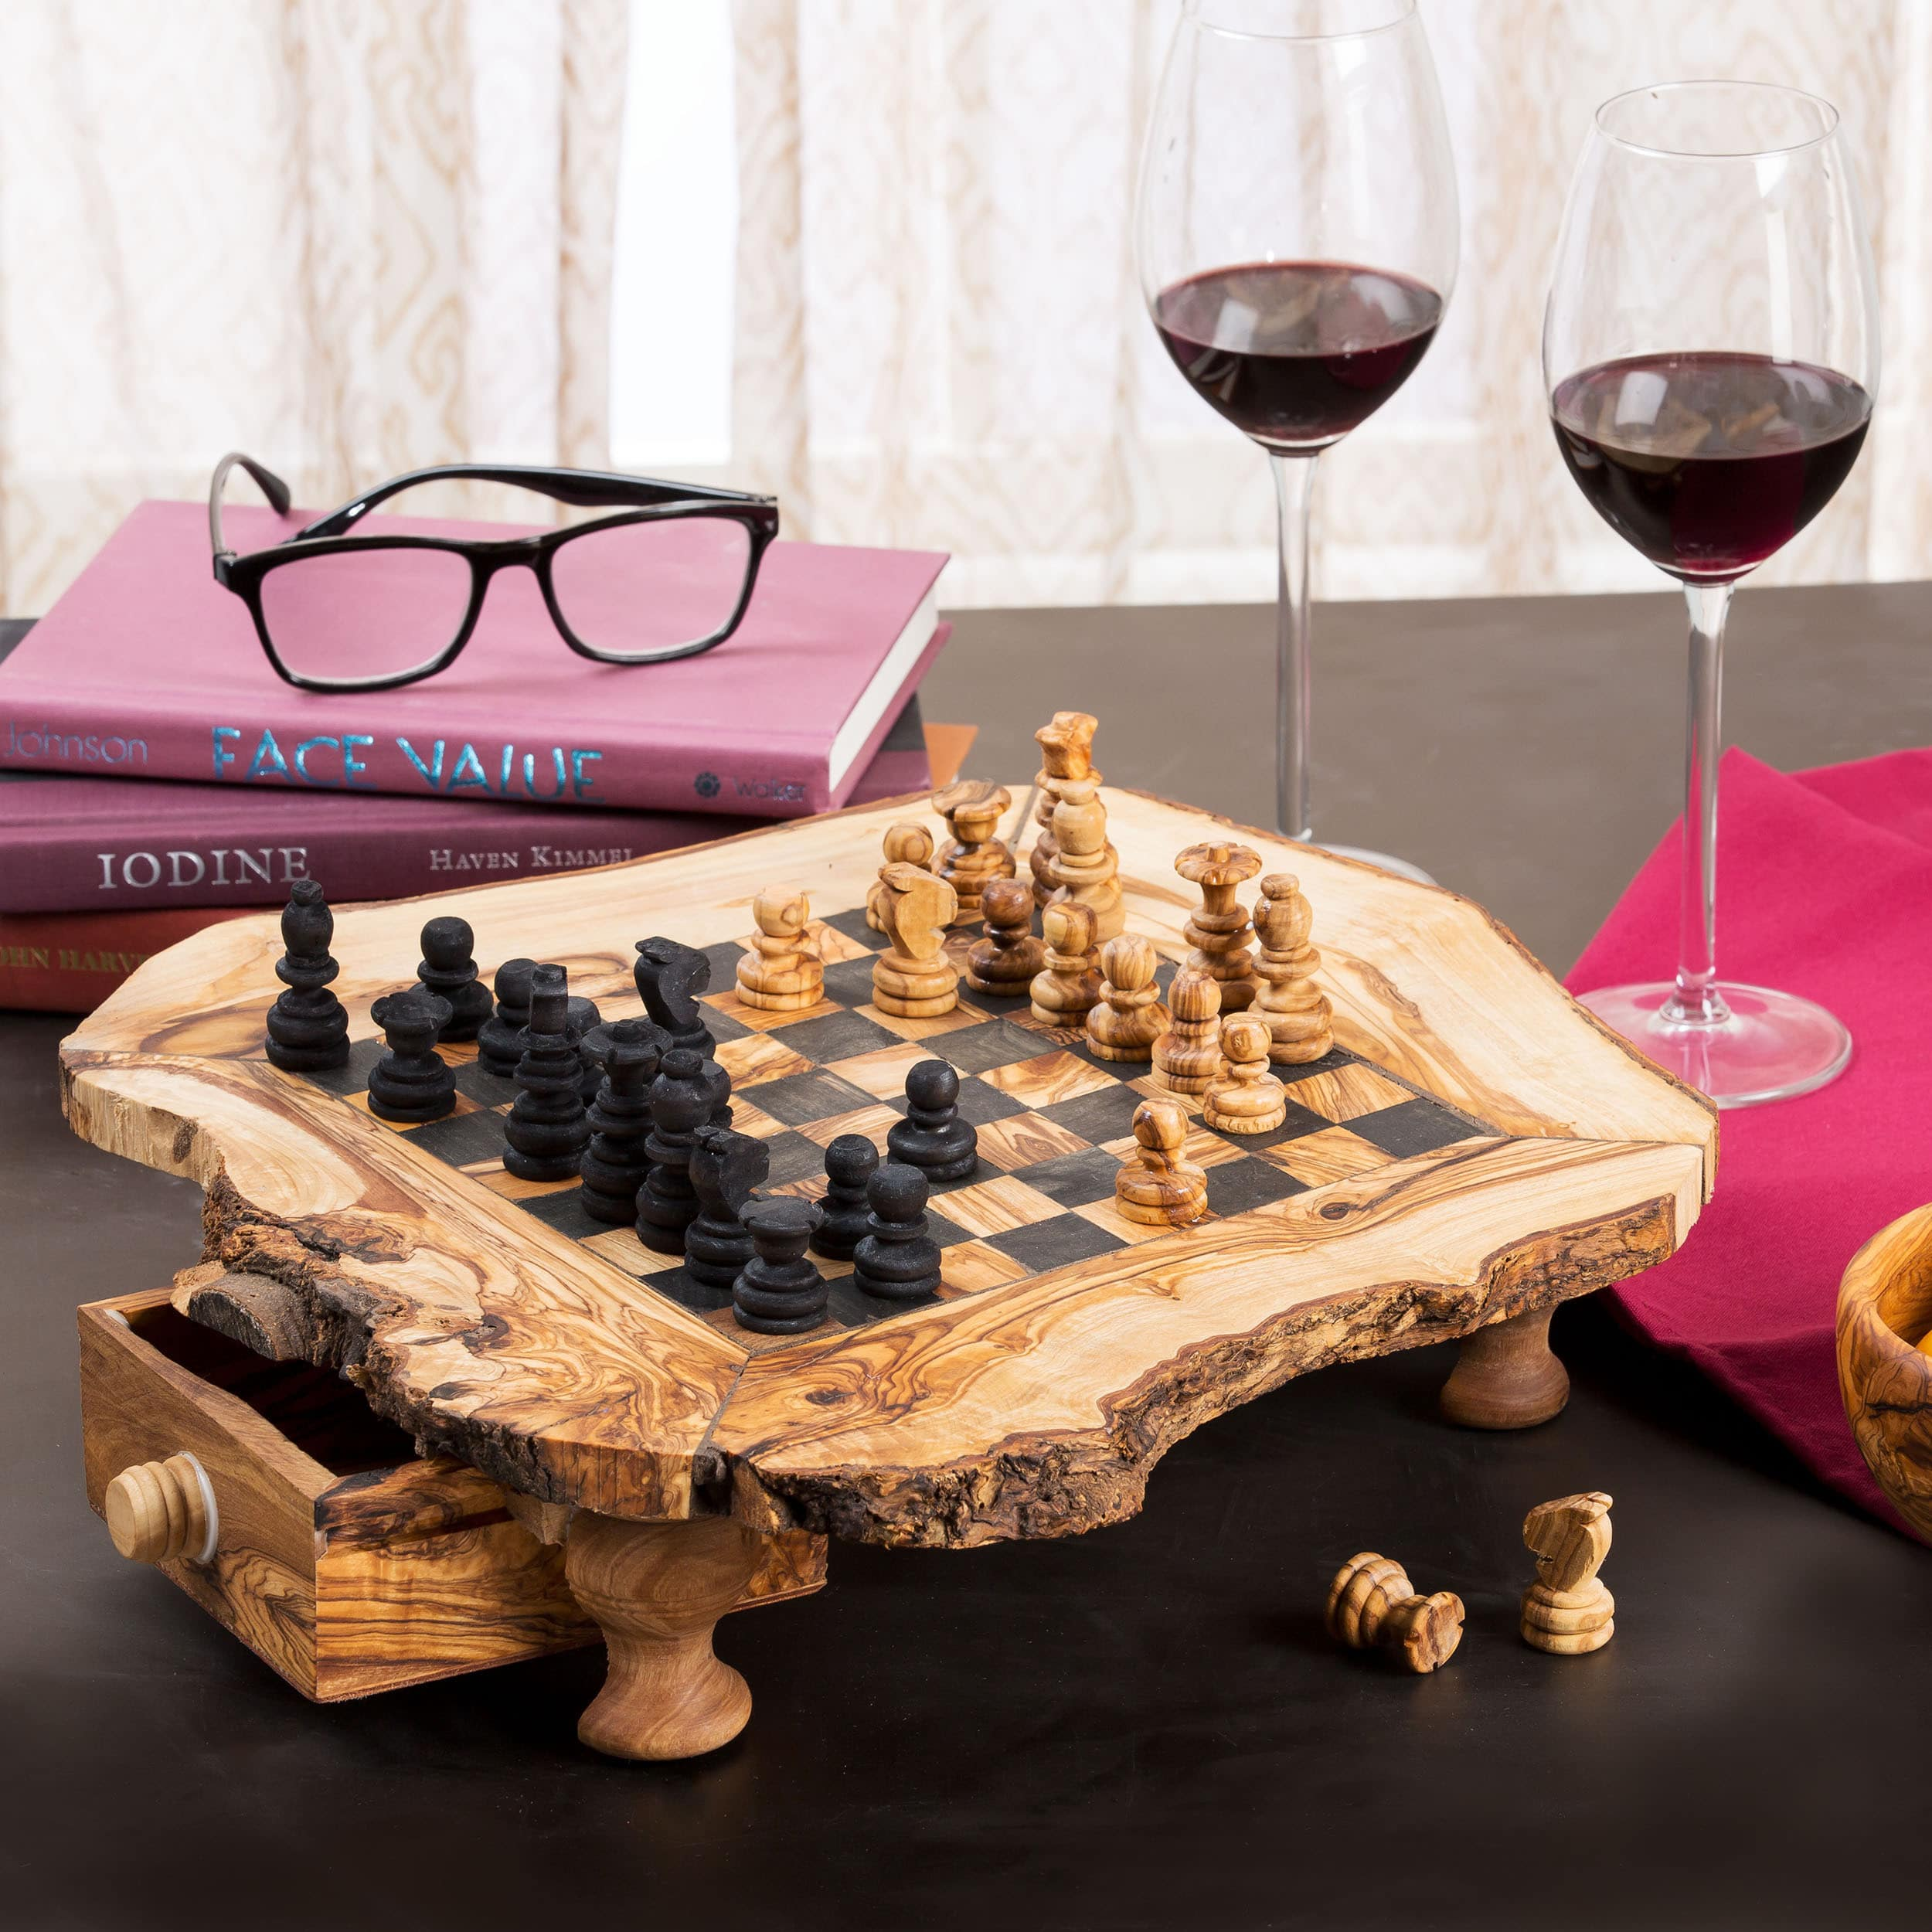 Beldinest Handmade Olive Wood Chess Set (Tunisia) Small Size (11x11x3) by Overstock